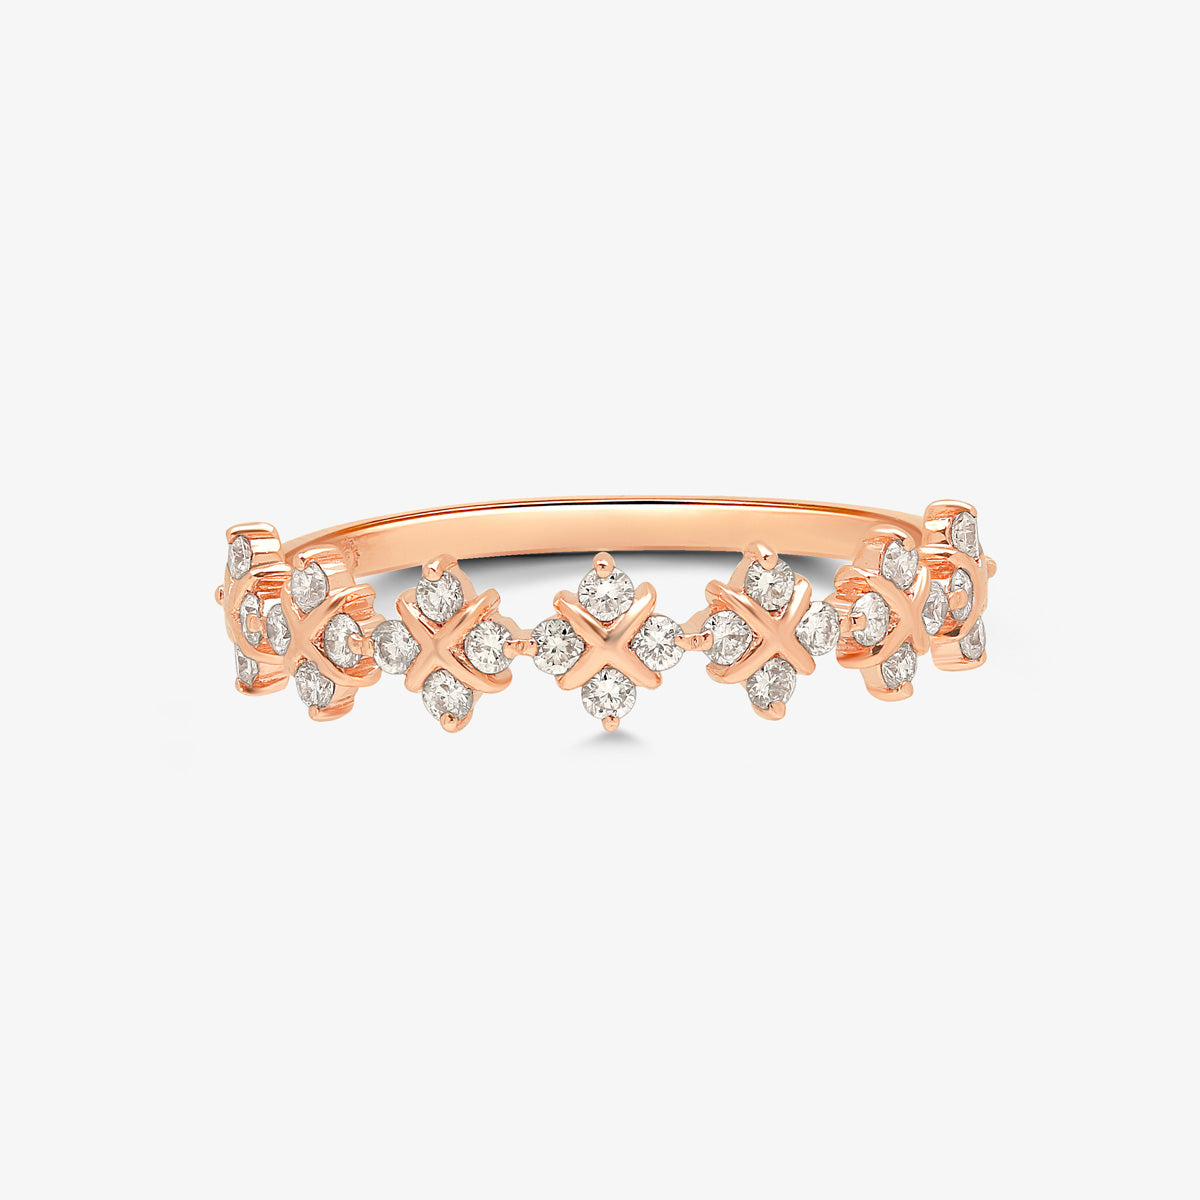 Gold And Diamond Eternity Stacking Band Ring - estellacollection